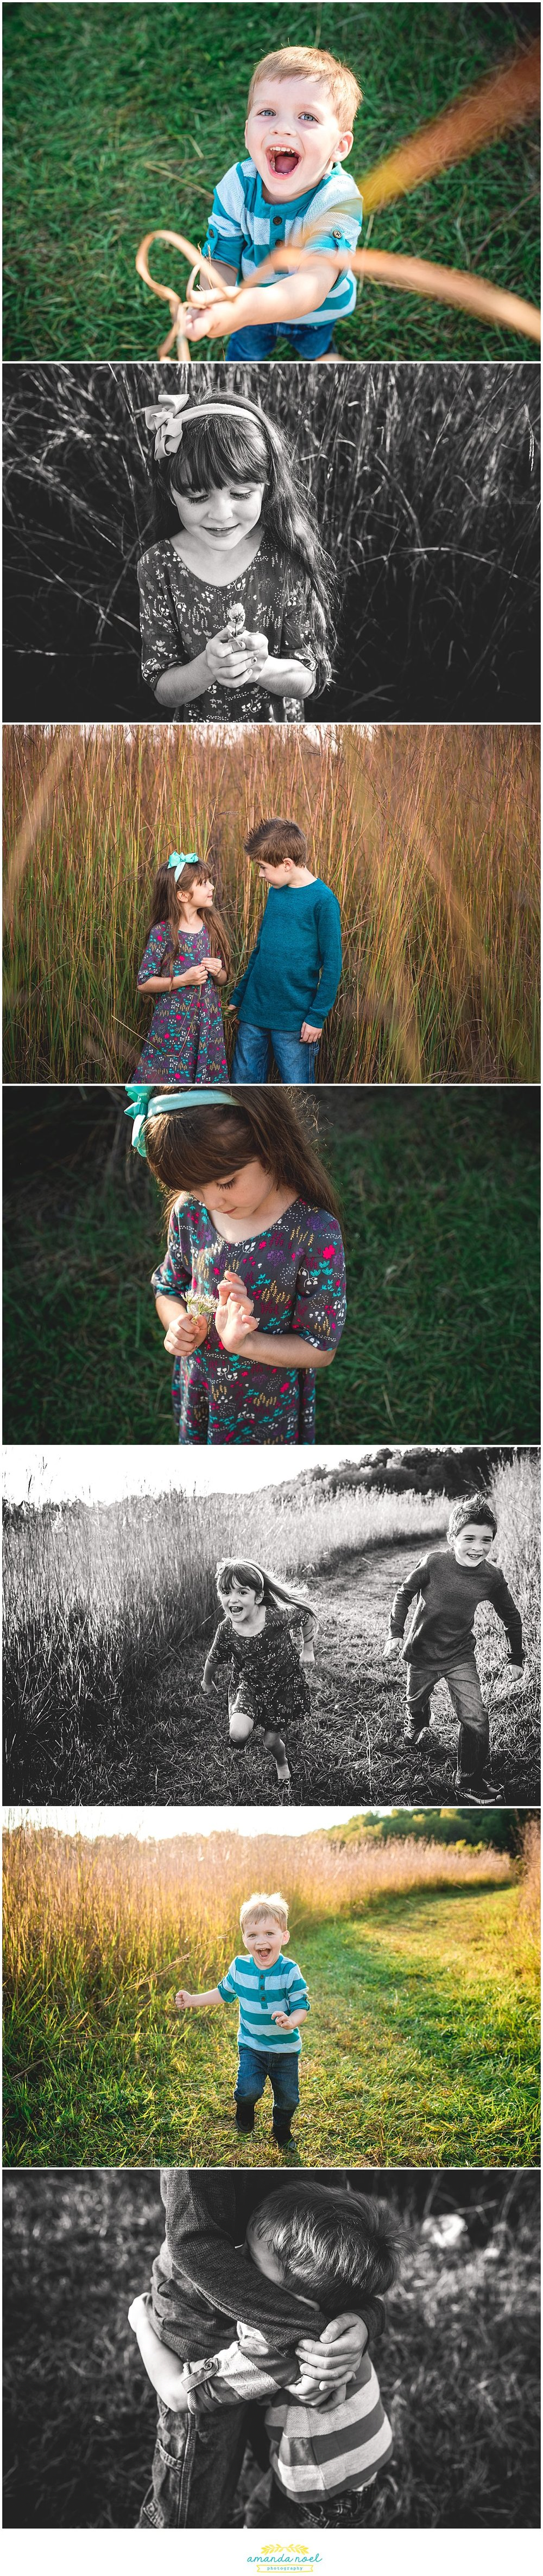 Central Ohio Family Photographer | Amanda Noel Photography